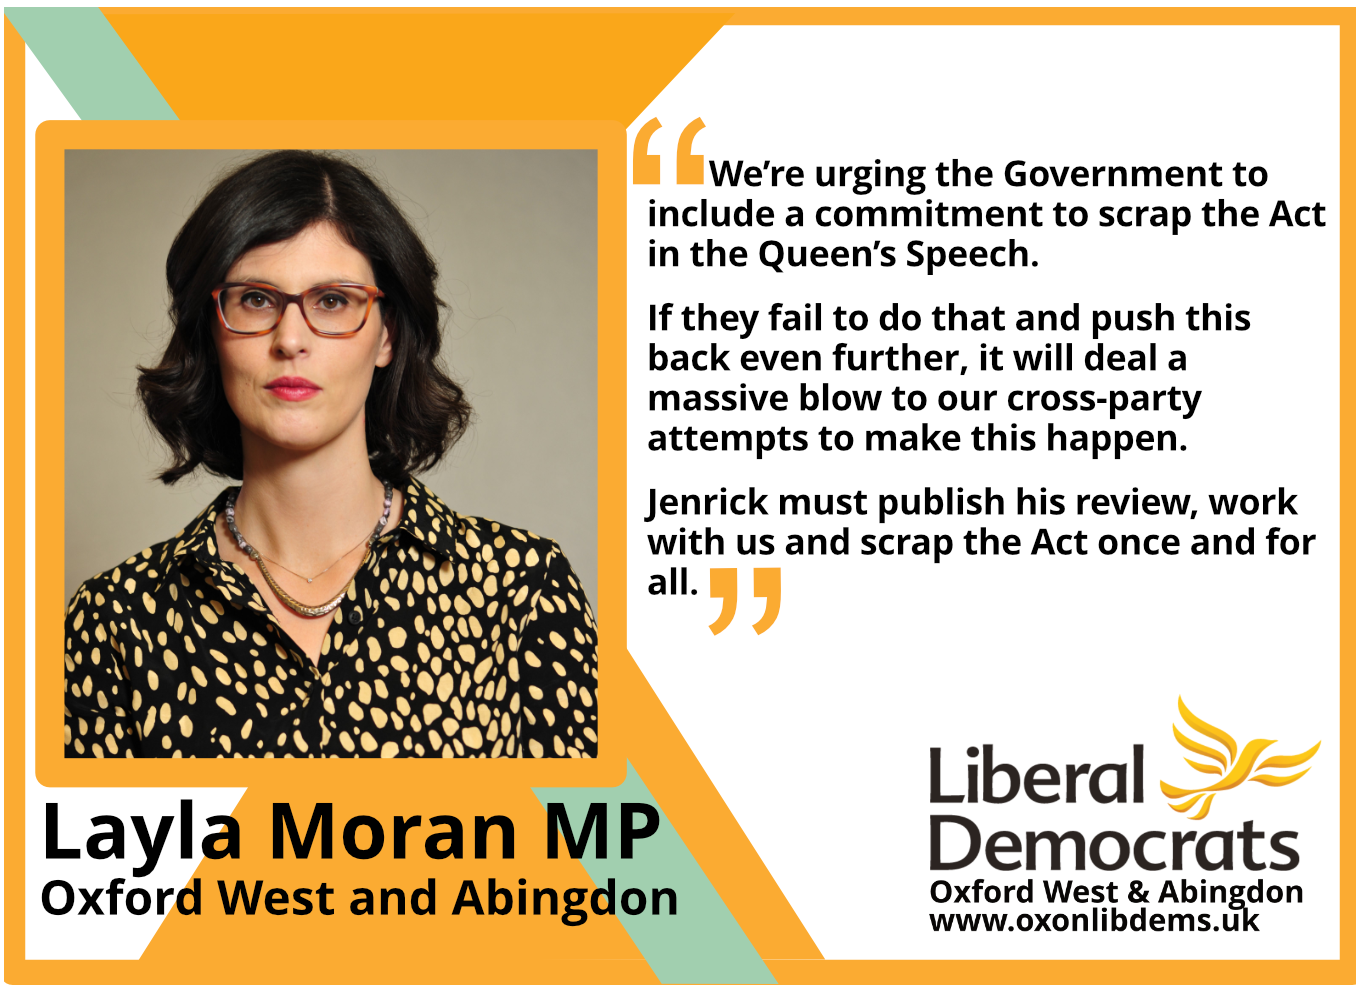 We're urging the Government to include a commitment to scrap the Act in the Queen's Speech. If they fail to do that and push this back even further, it will deal a massive blow to our cross-party attempts to make this happen. Jenrick must publish his review, work with us and scrap the Act once and for all